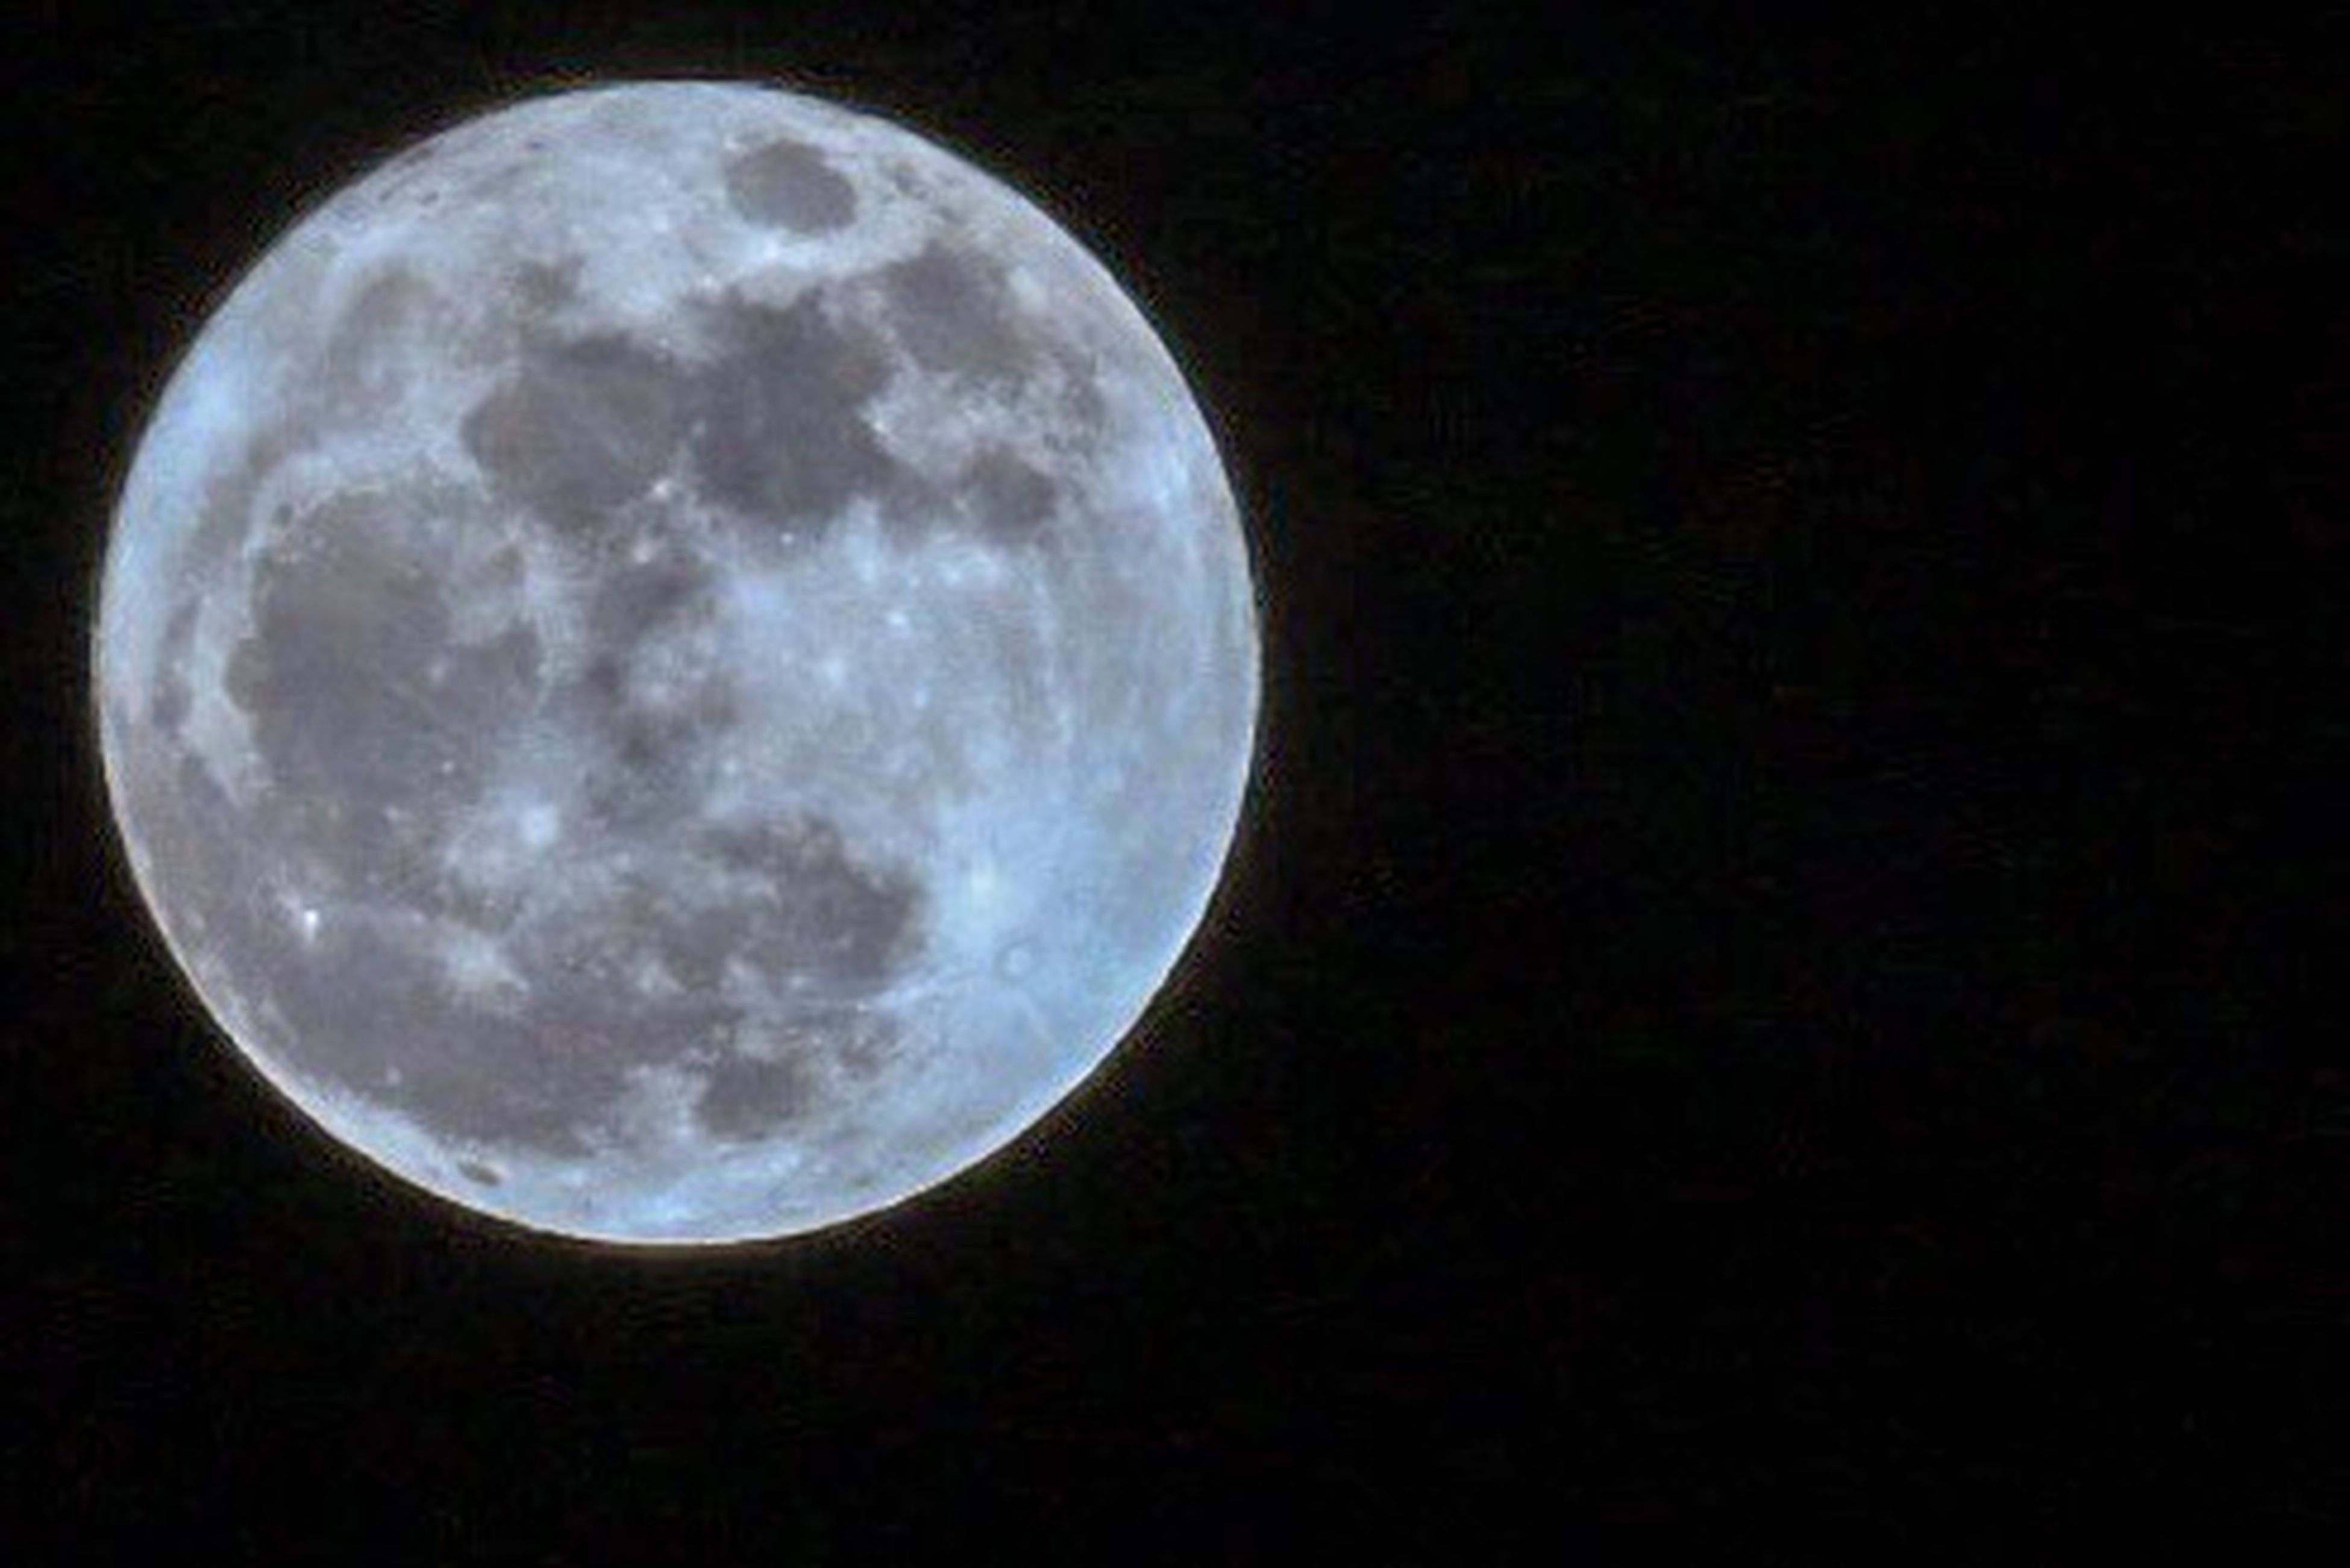 moon, full moon, night, no people, dark, nature, astronomy, tranquility, outdoors, moon surface, beauty in nature, close-up